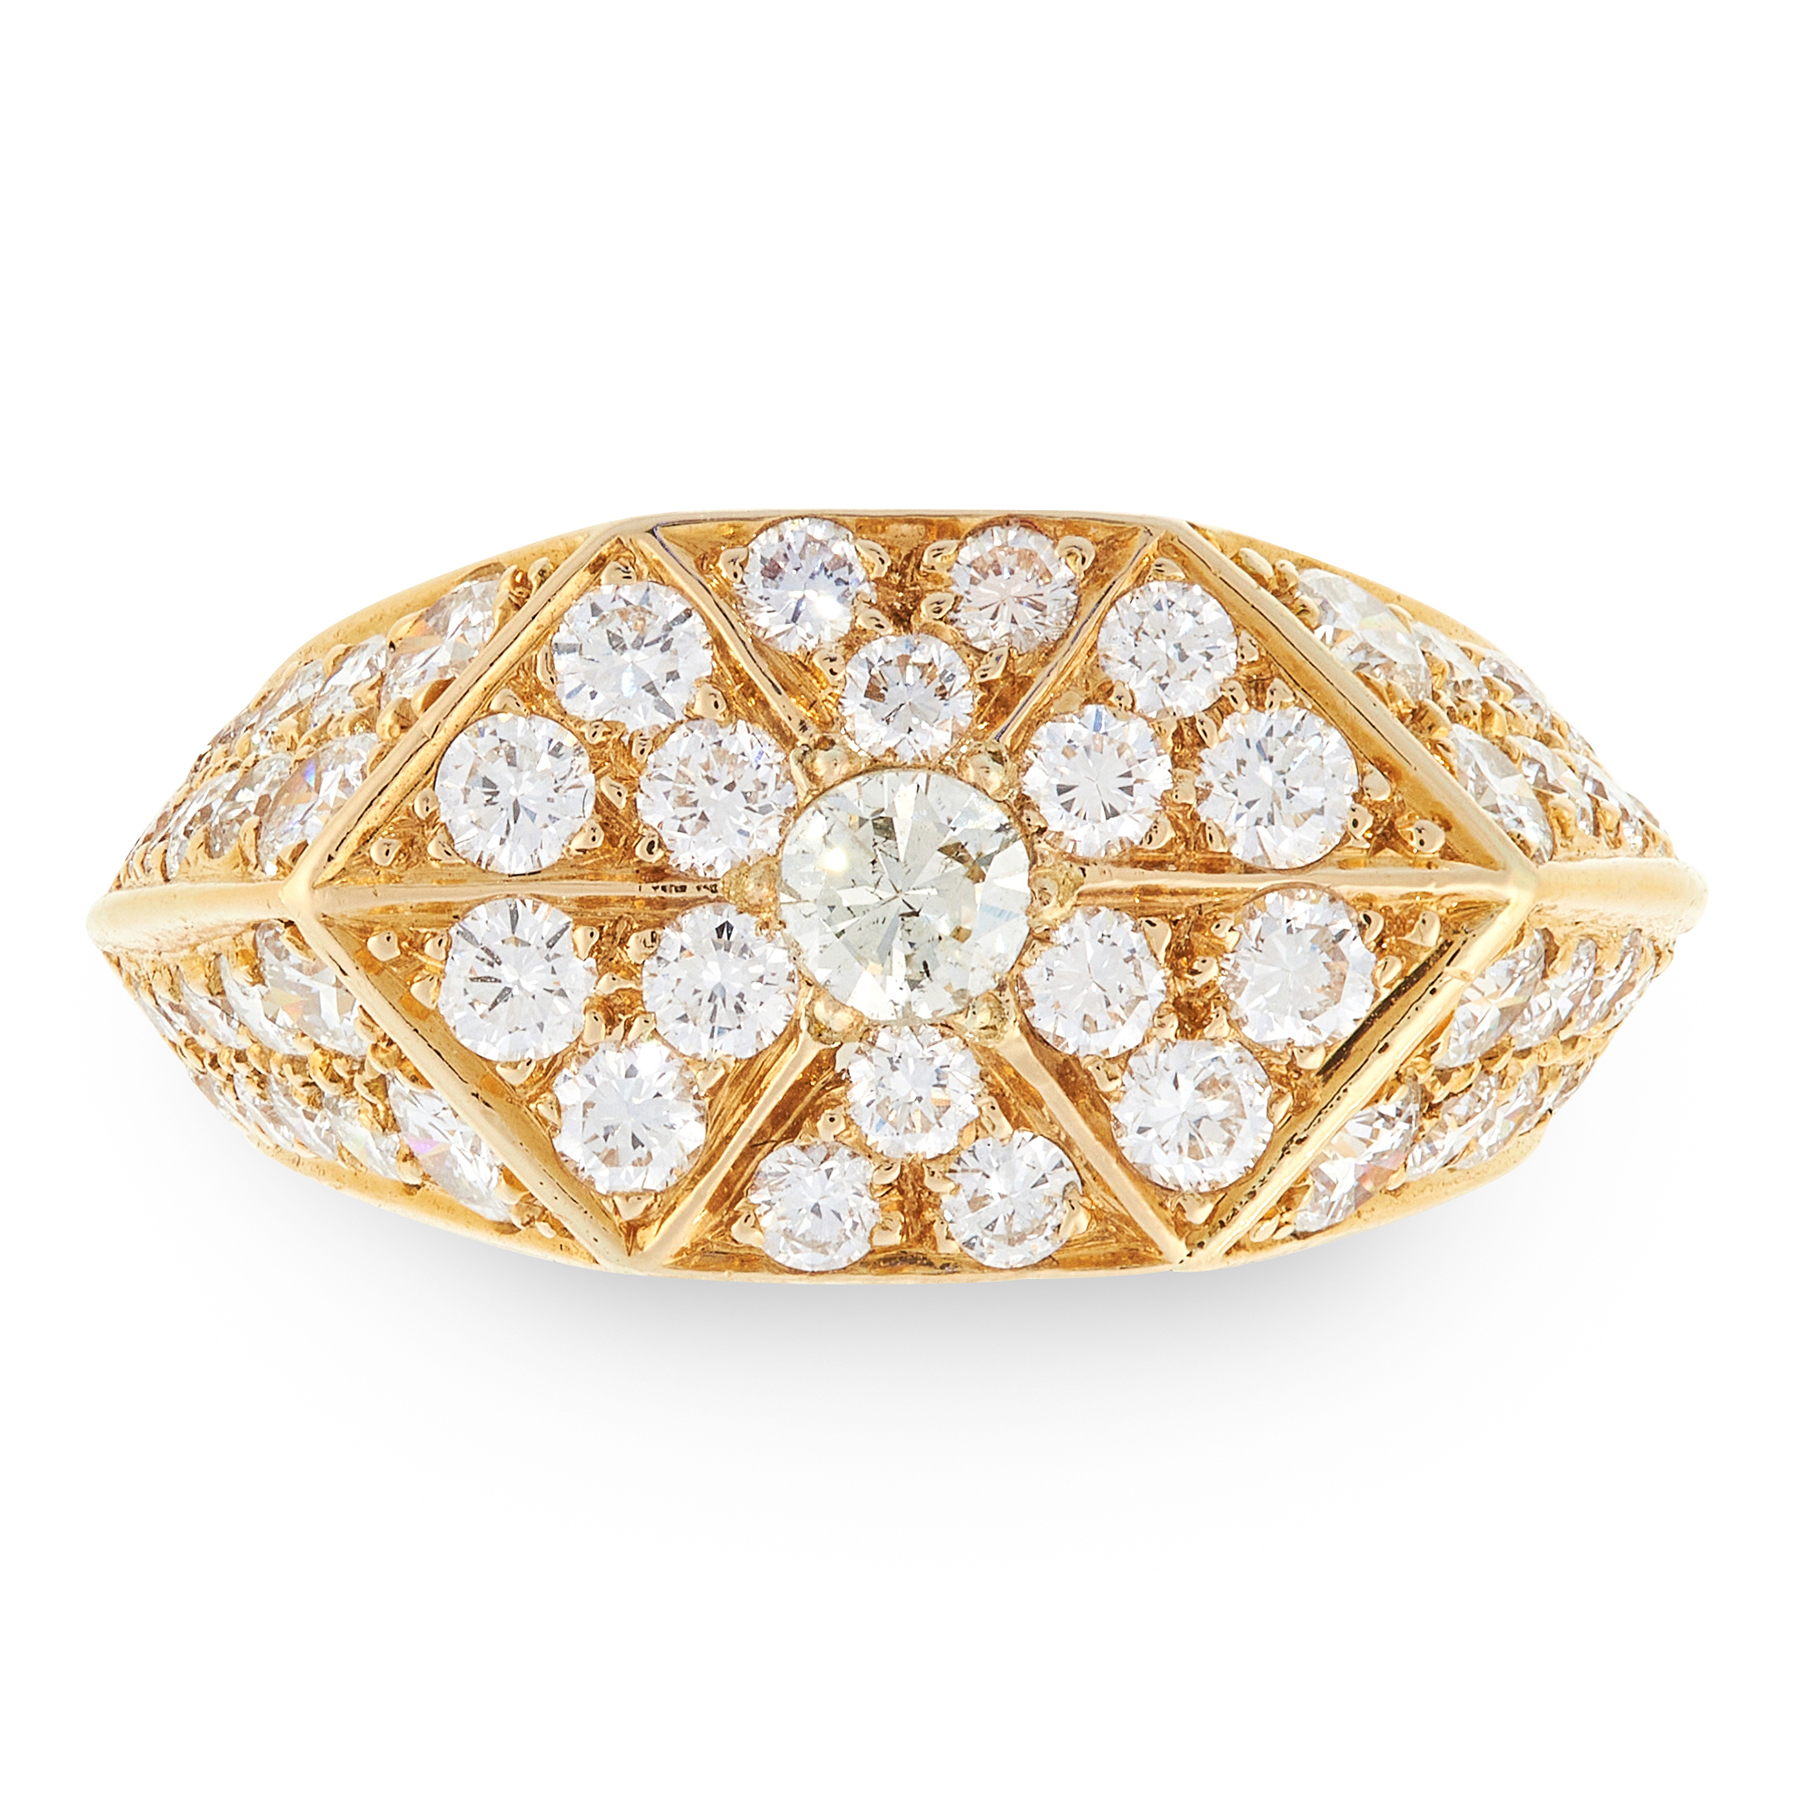 A VINTAGE DIAMOND DRESS RING in 18ct yellow gold, the hexagonal face jewelled allover with round cut